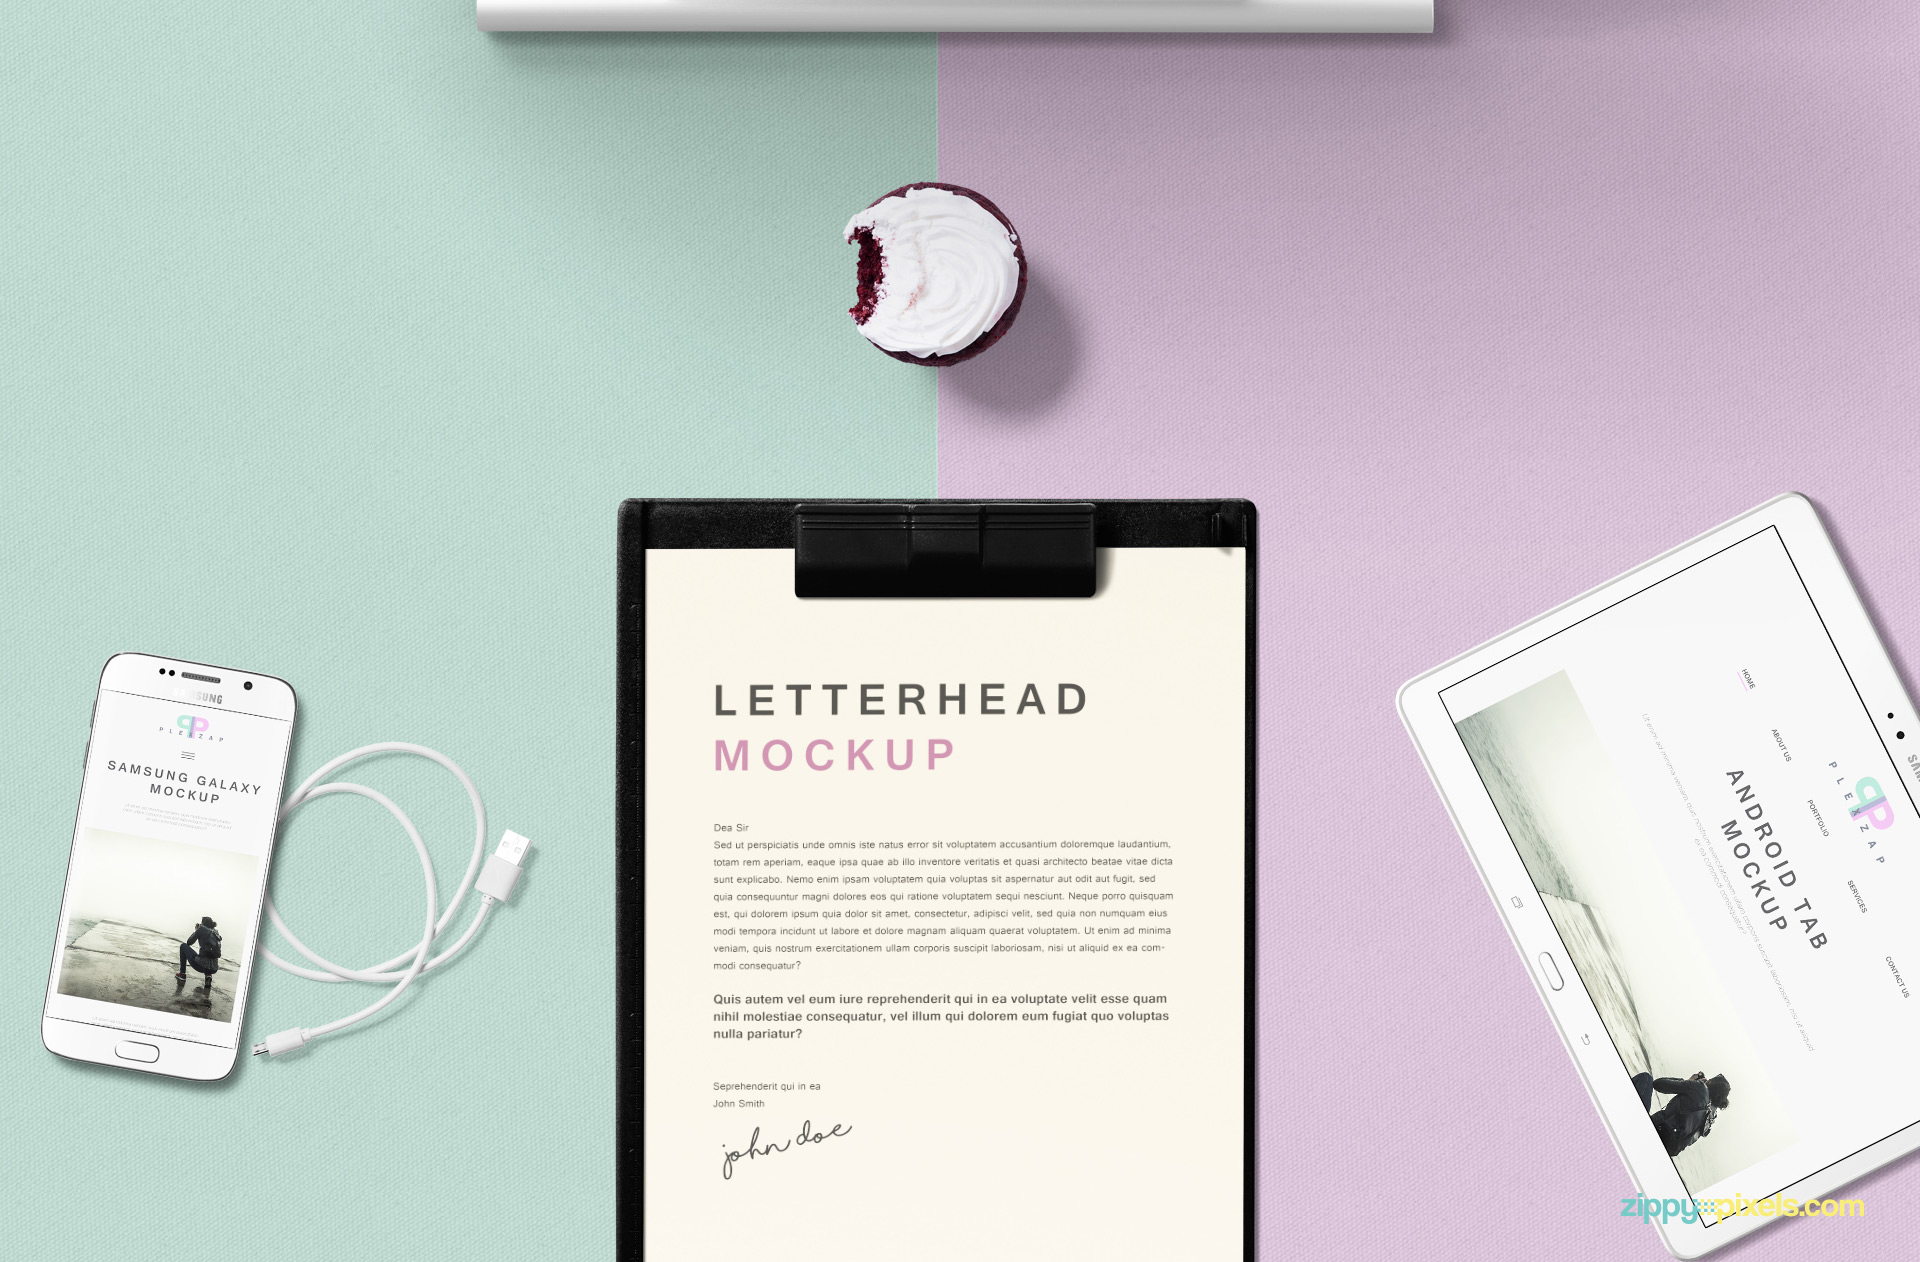 Letterhead mockup including mobile, tab, cupcake and wire.